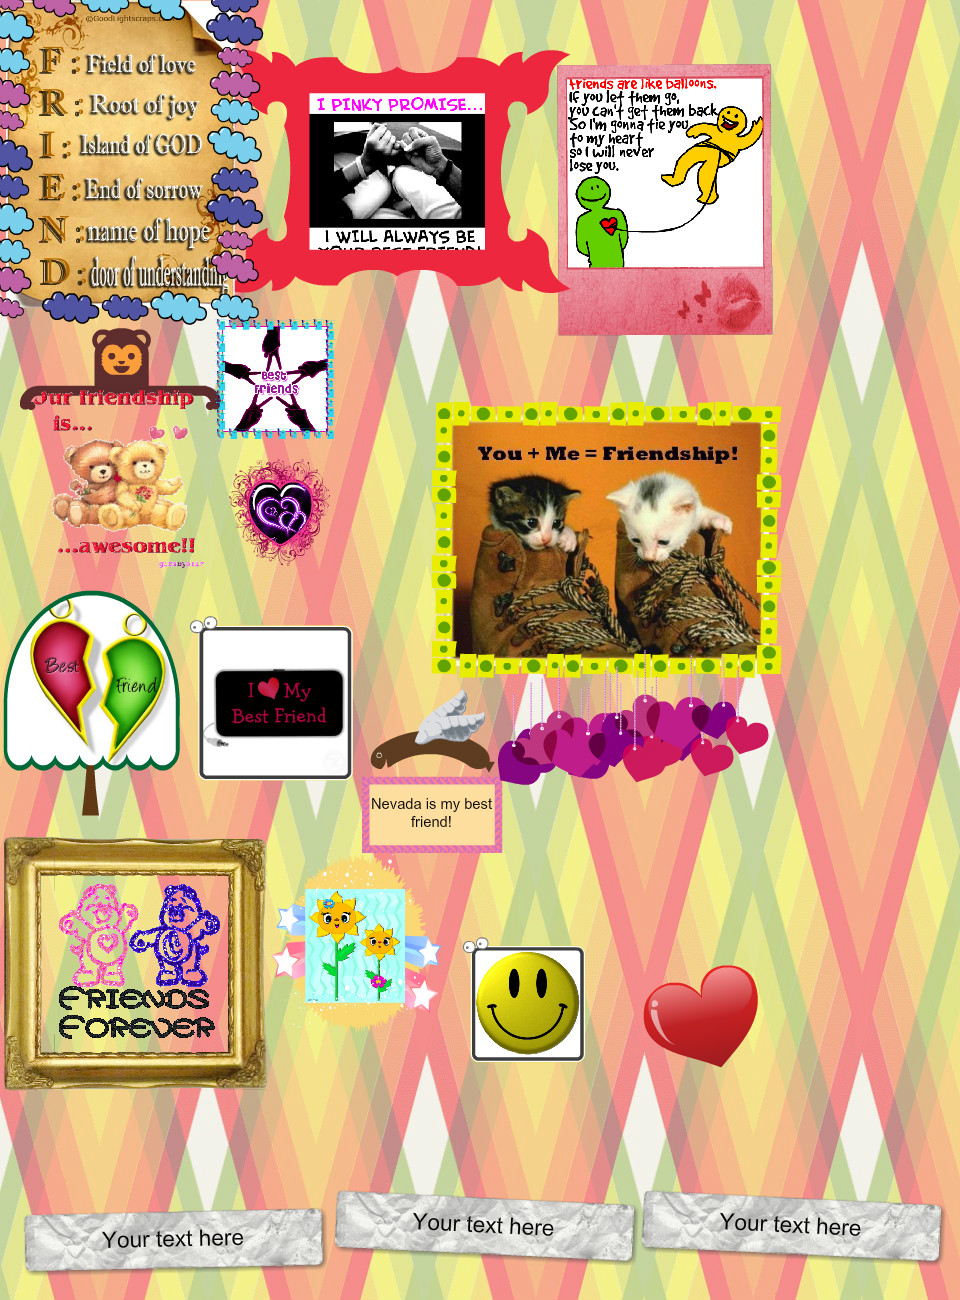 FRIENDSHIP By: Audrie